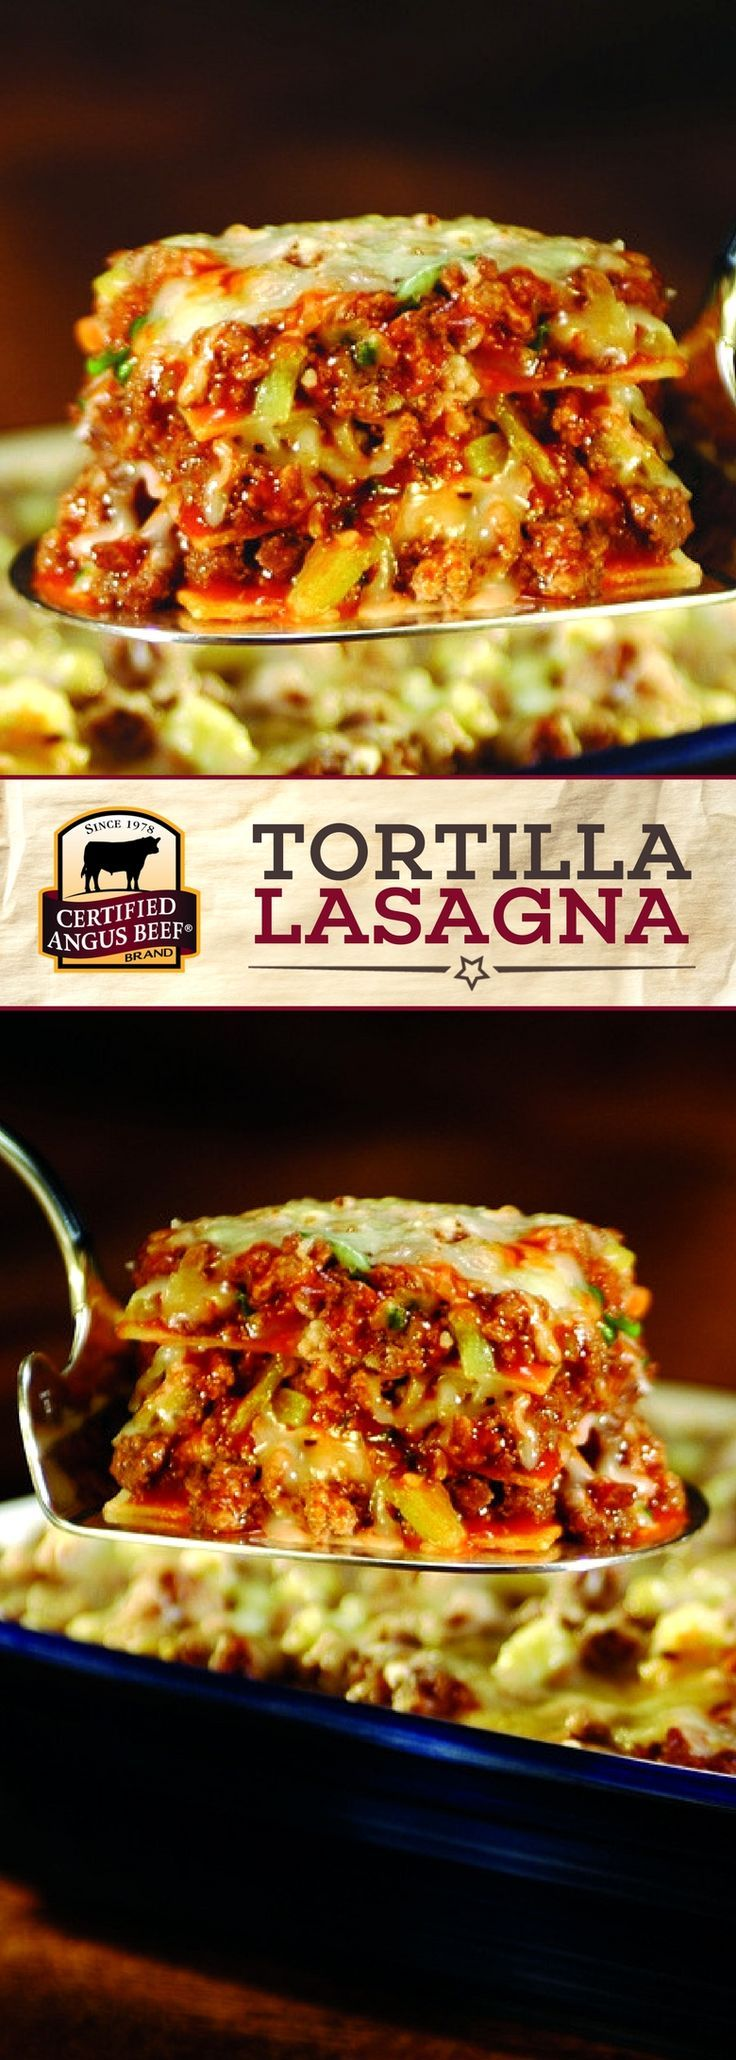 Certified Angus Beef®️️️️️ brand Tortilla Lasagna uses the best ground chuck combined with taco seasoning, green onions and salsa for a FLAVORFUL meal that your family will ask for again and again. This EASY recipe is the perfect meal for feeding a crowd, too!